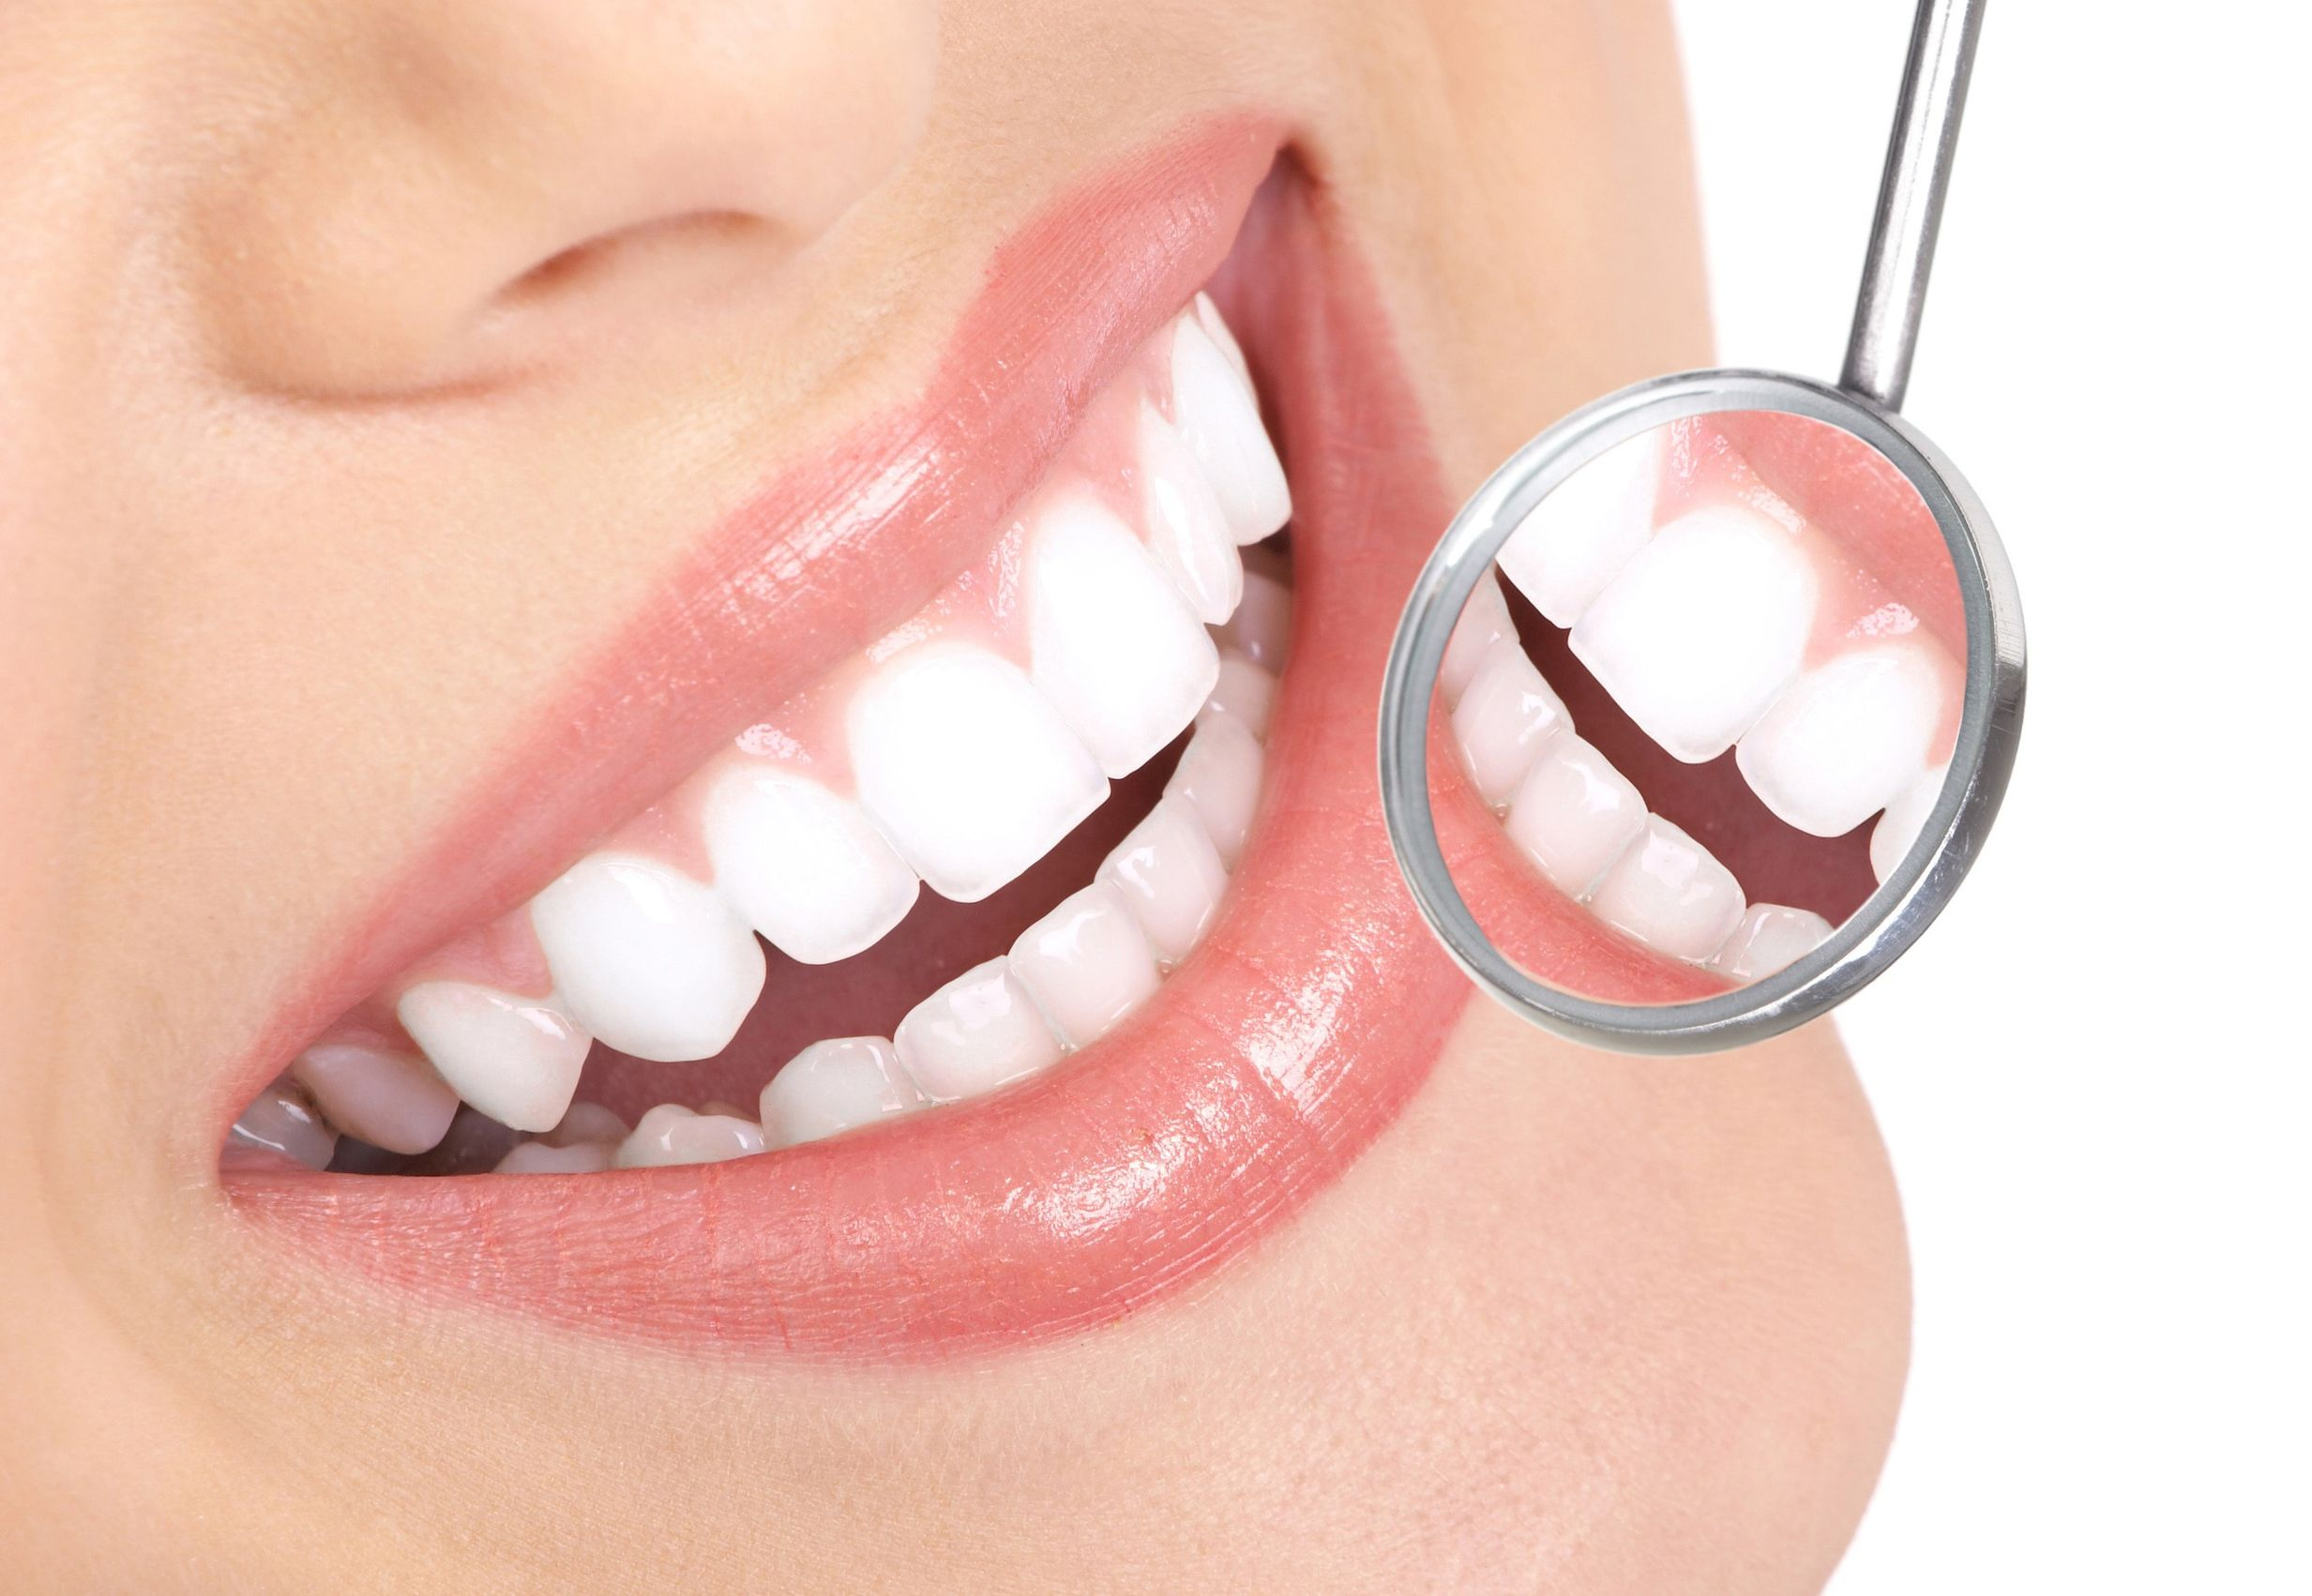 Where can I get a Fort Lauderdale Teeth Cleaning?